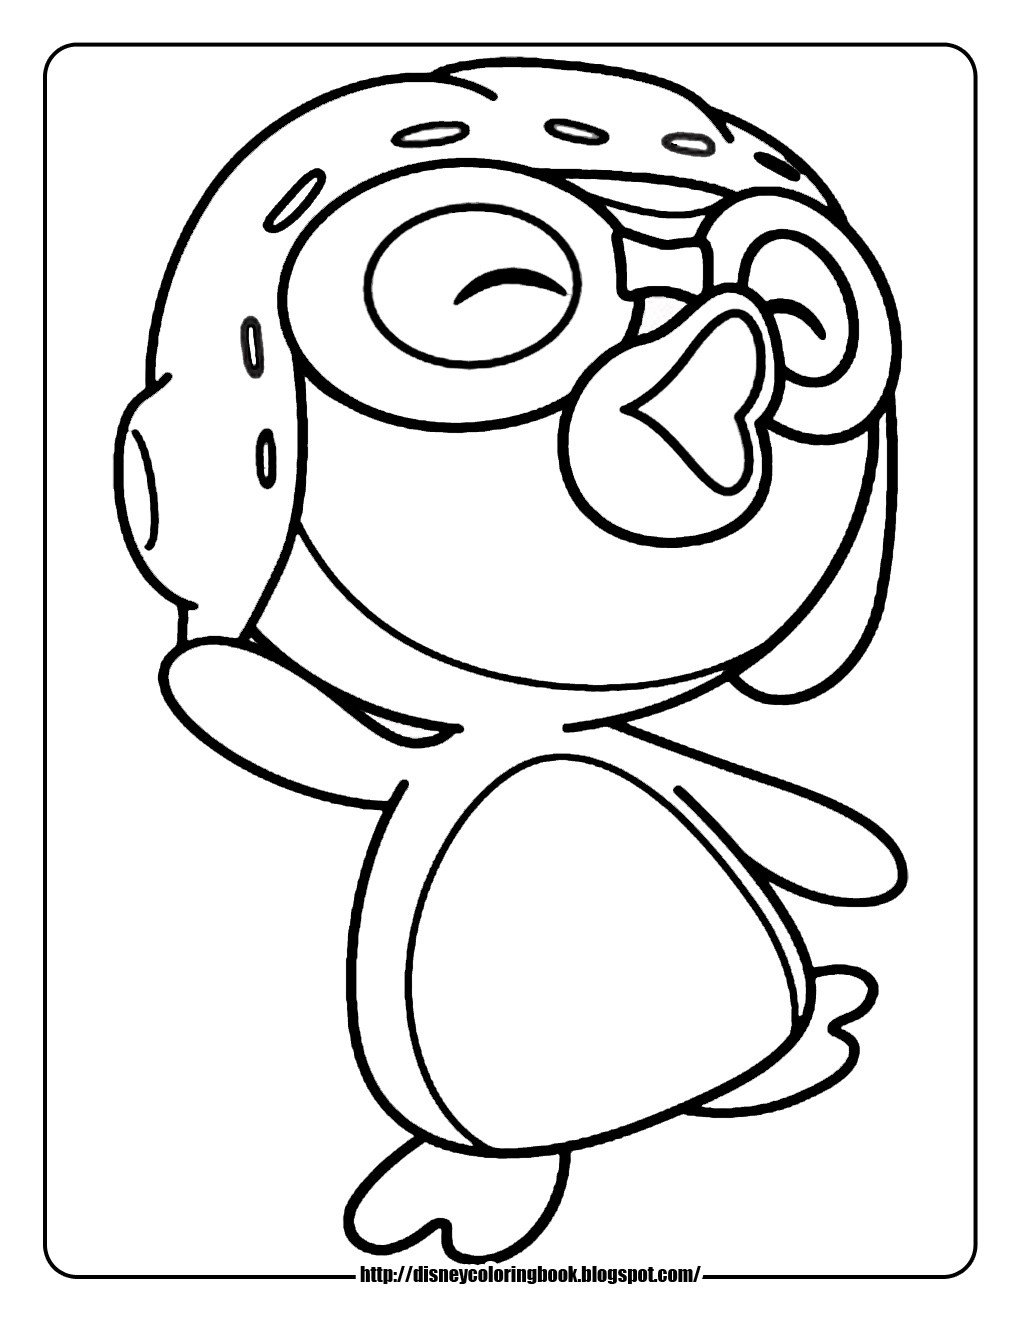 Printable Penguin Coloring Pages  Penguin Coloring Pages